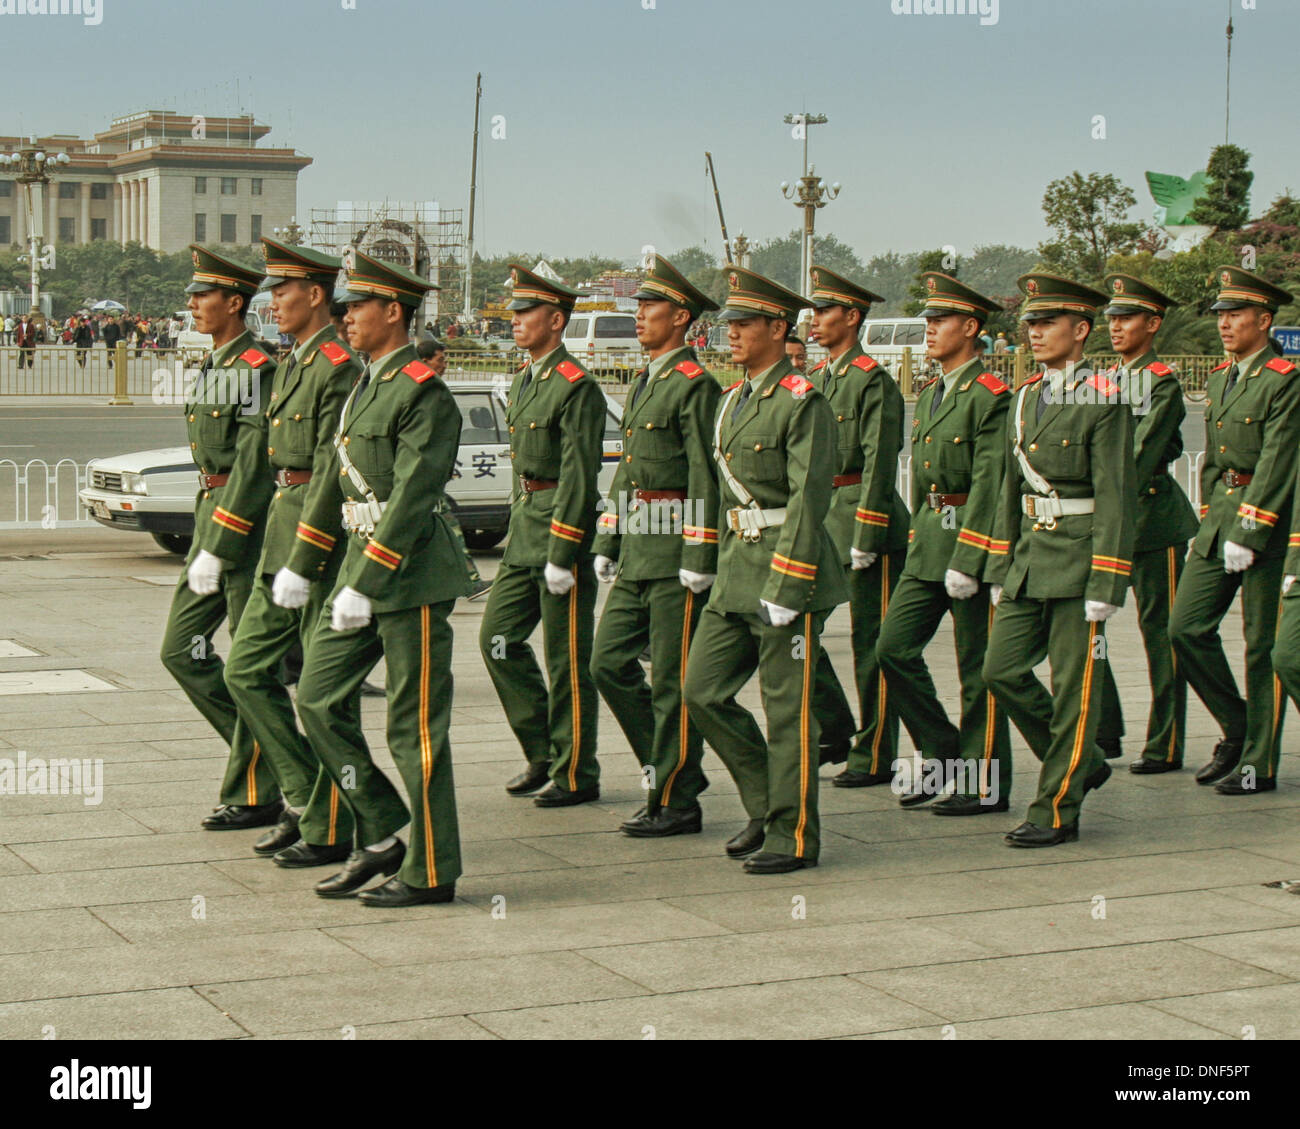 China Police: Peoples Armed Police Guard Stock Photos & Peoples Armed